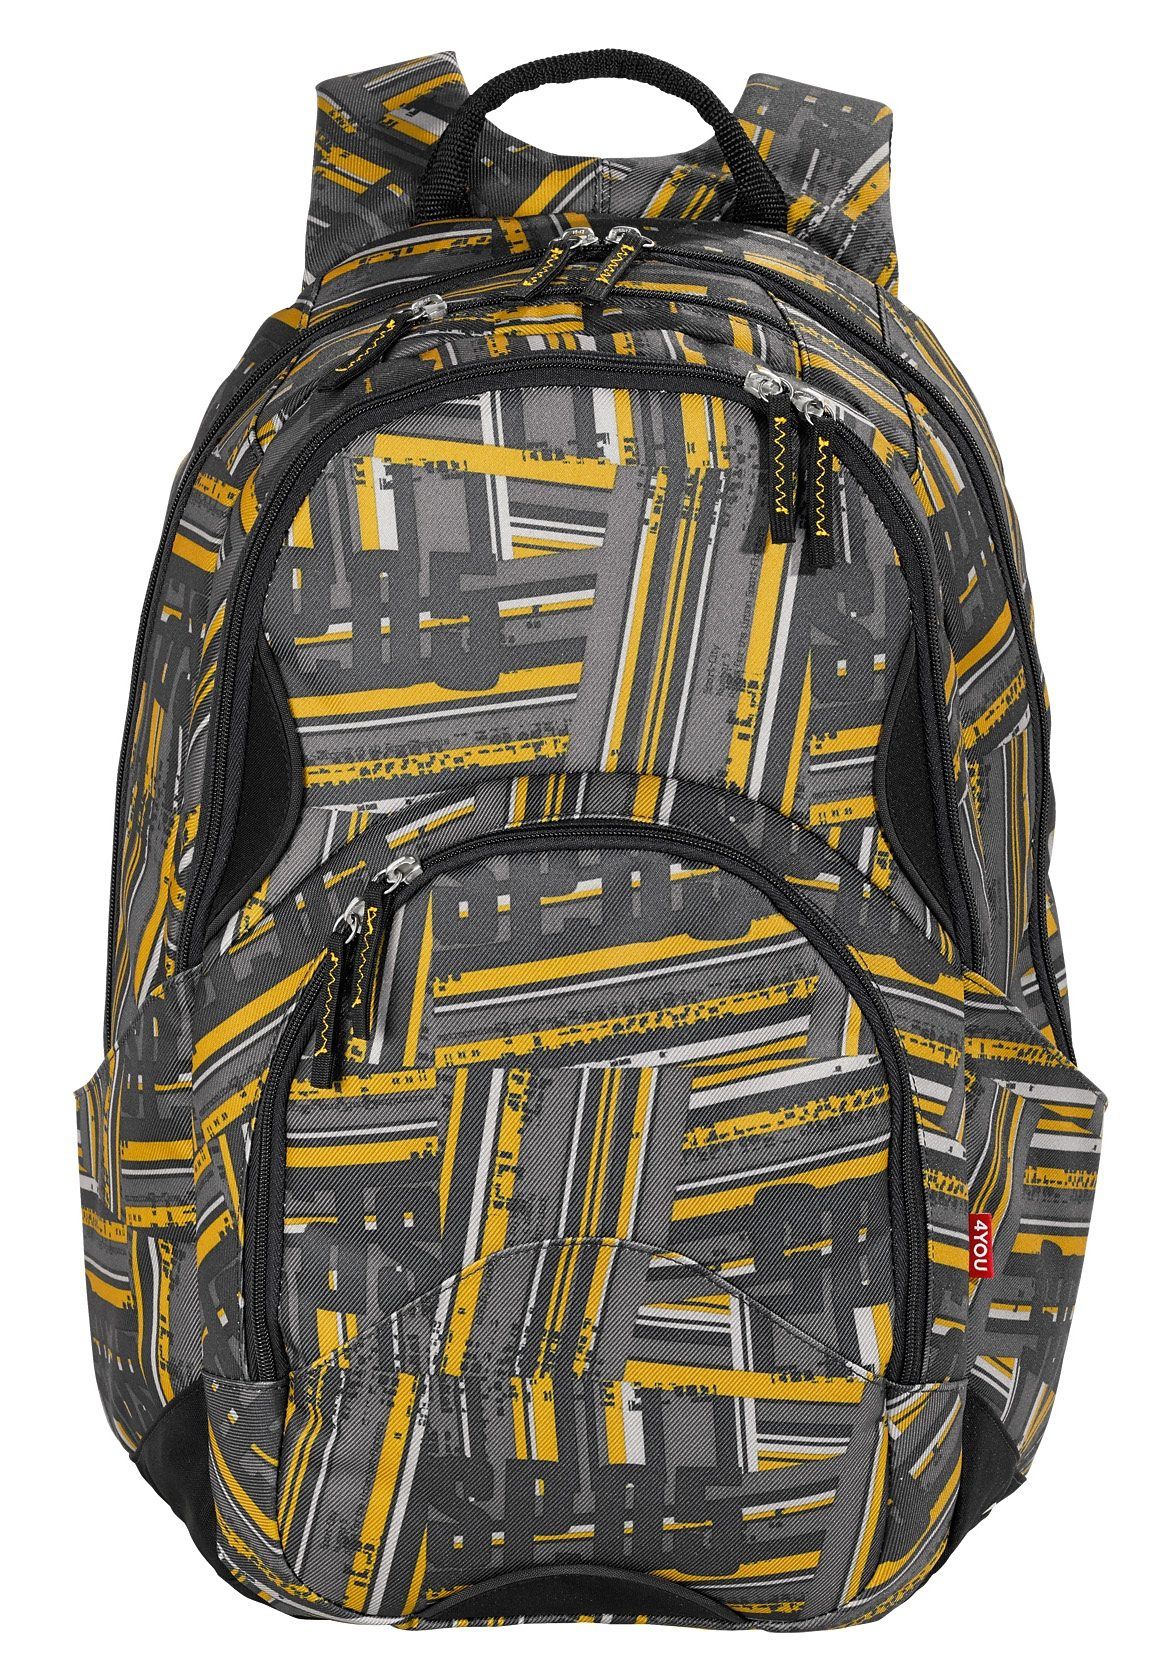 4YOU Schulrucksack mit Laptopfach, Stripes, »Flow«